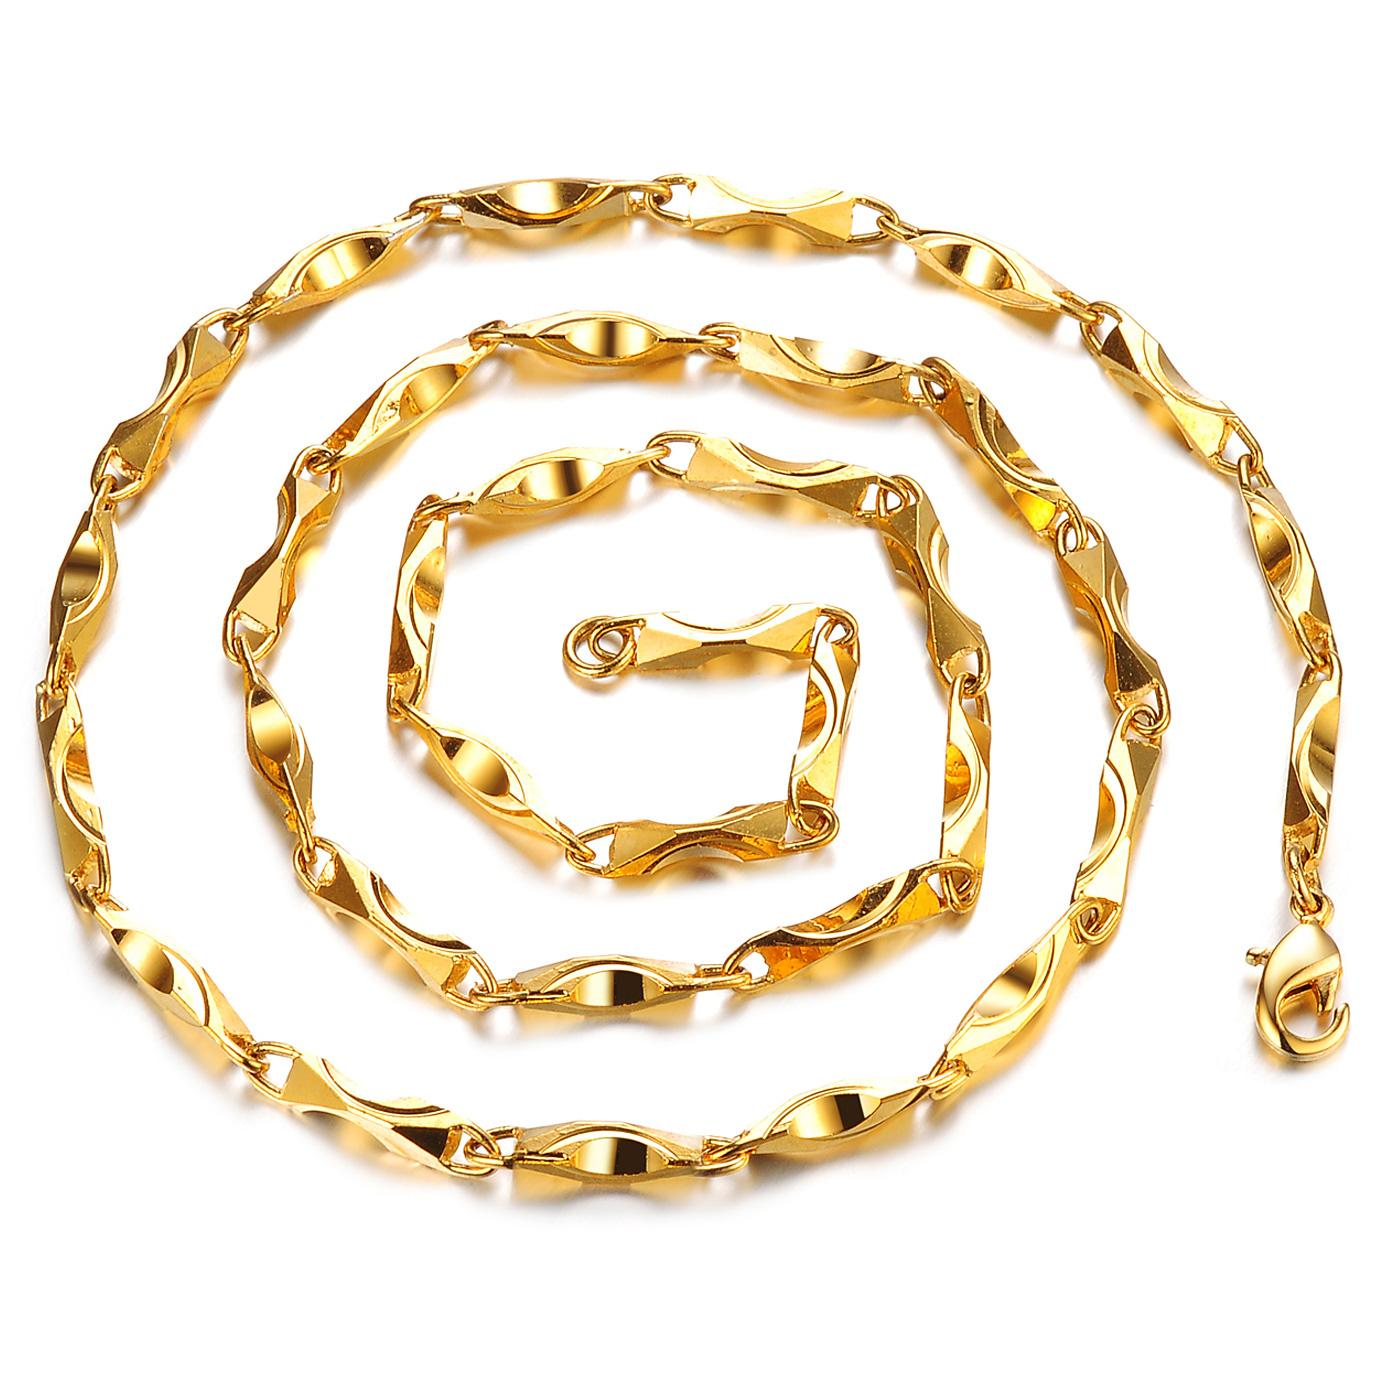 Gold Chain Designs for Men with Weight  YouTube